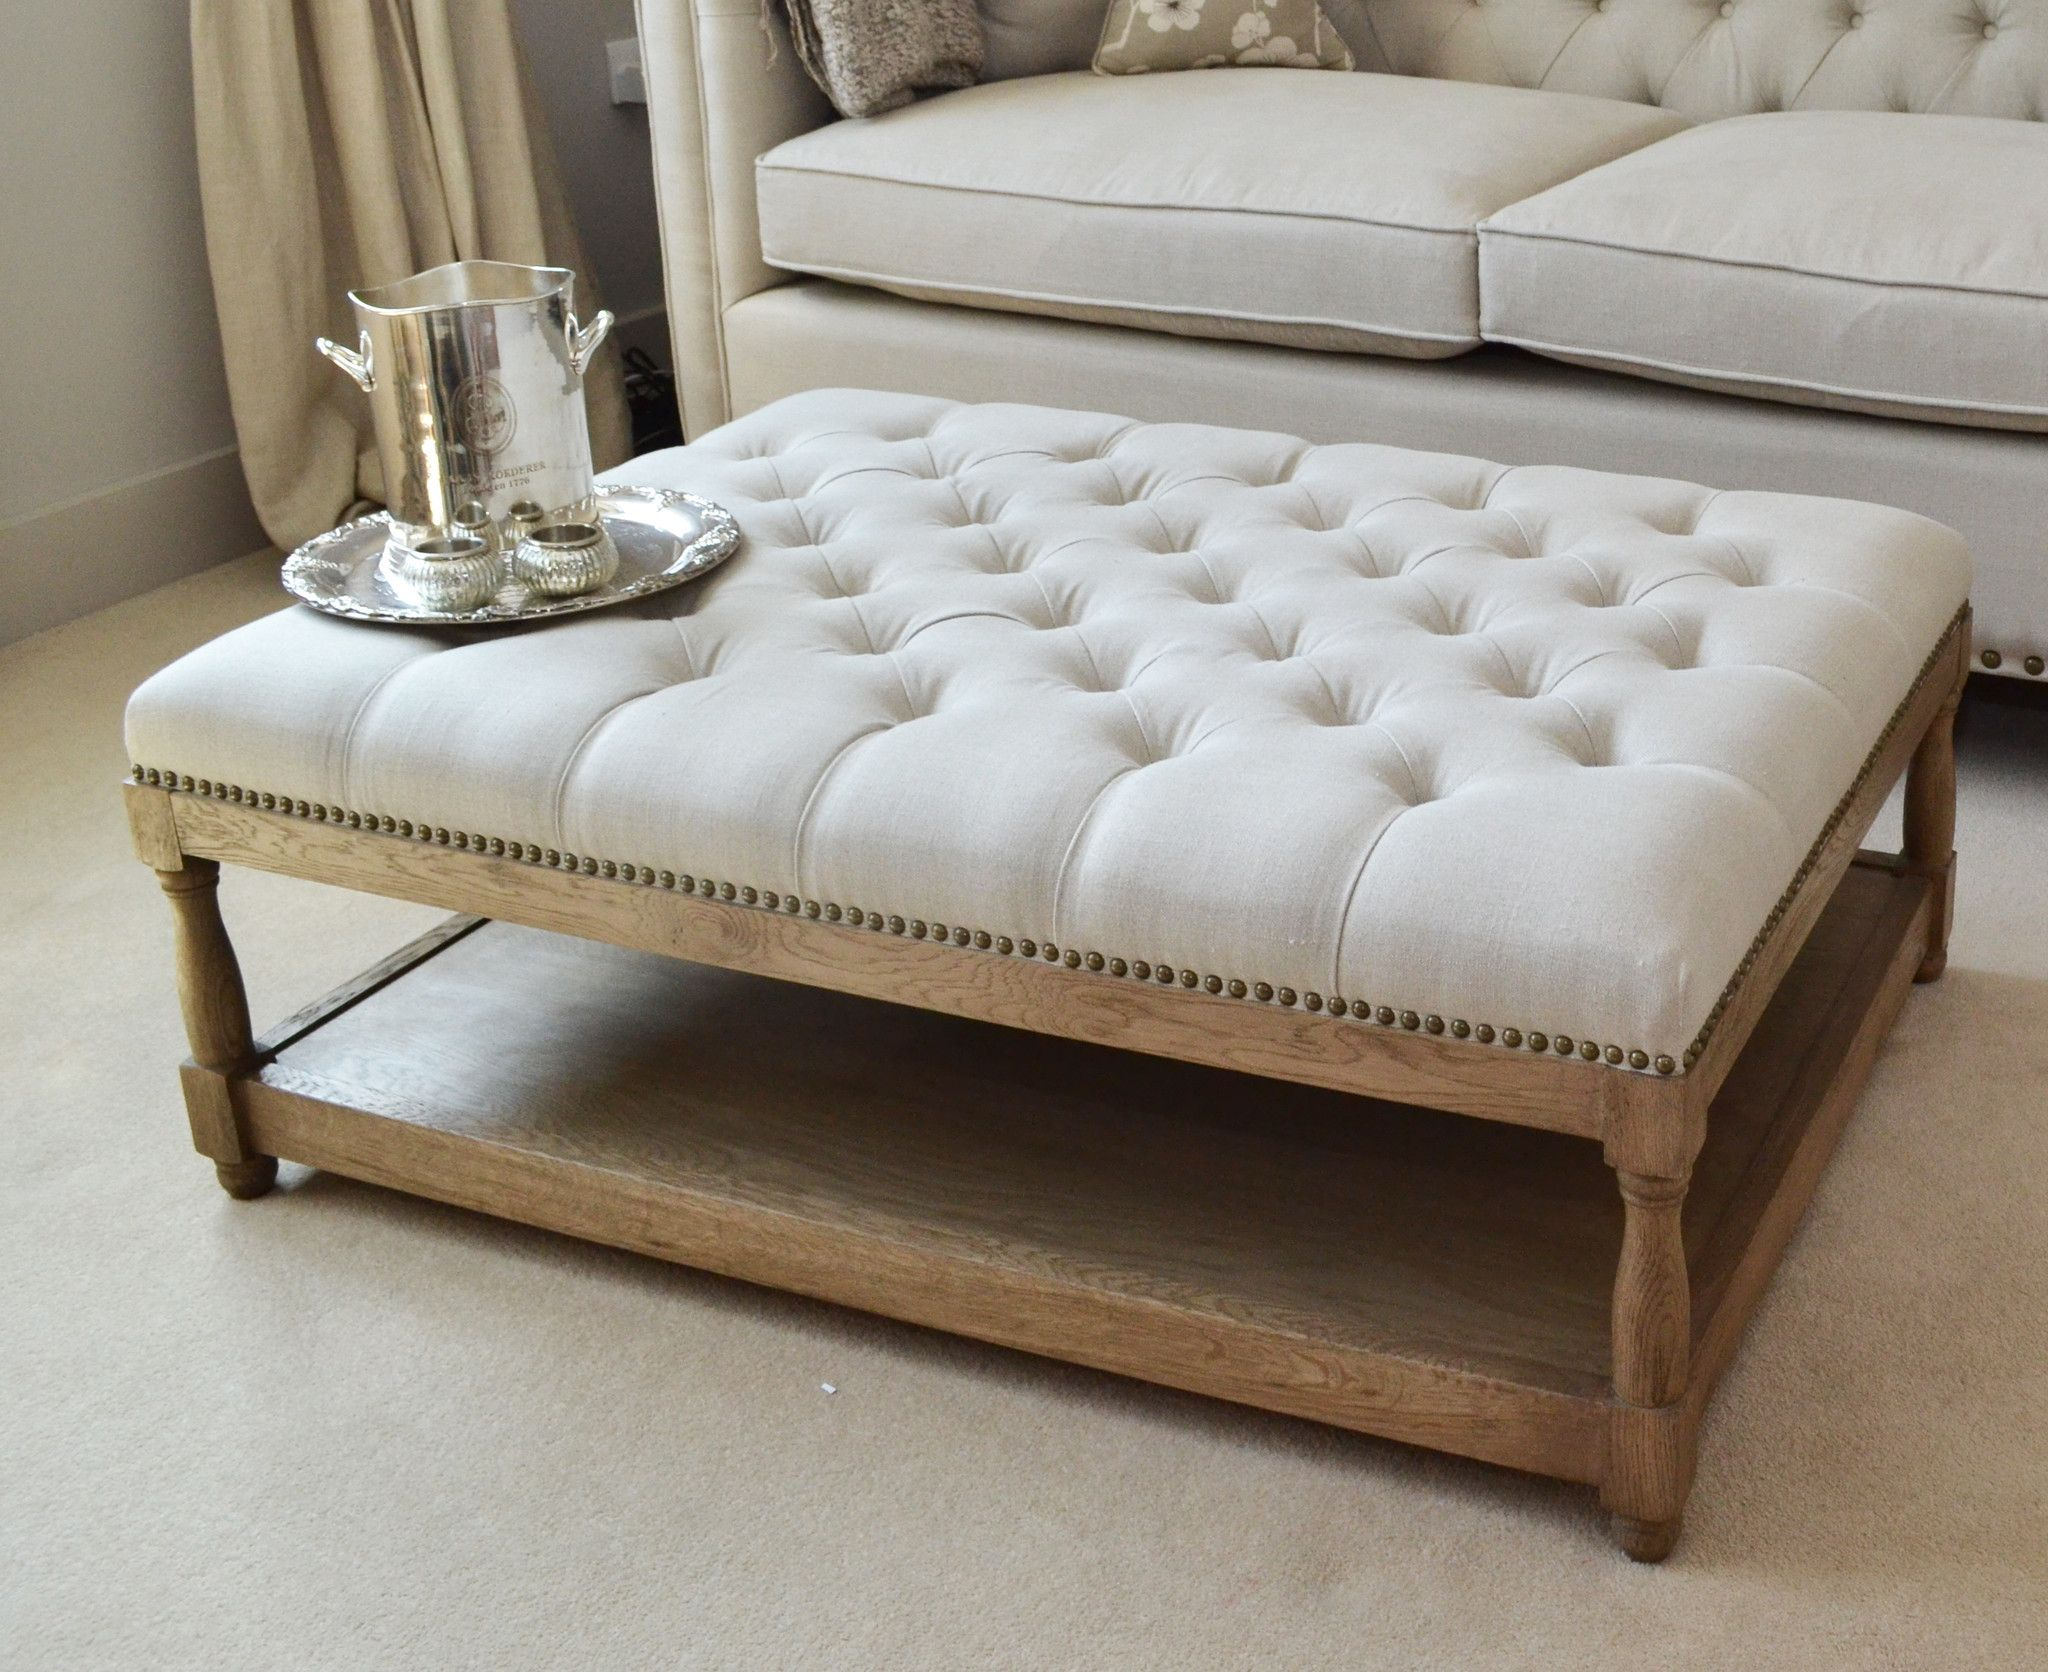 Our original Petit Royale Ottoman Coffee Table is upholstered in